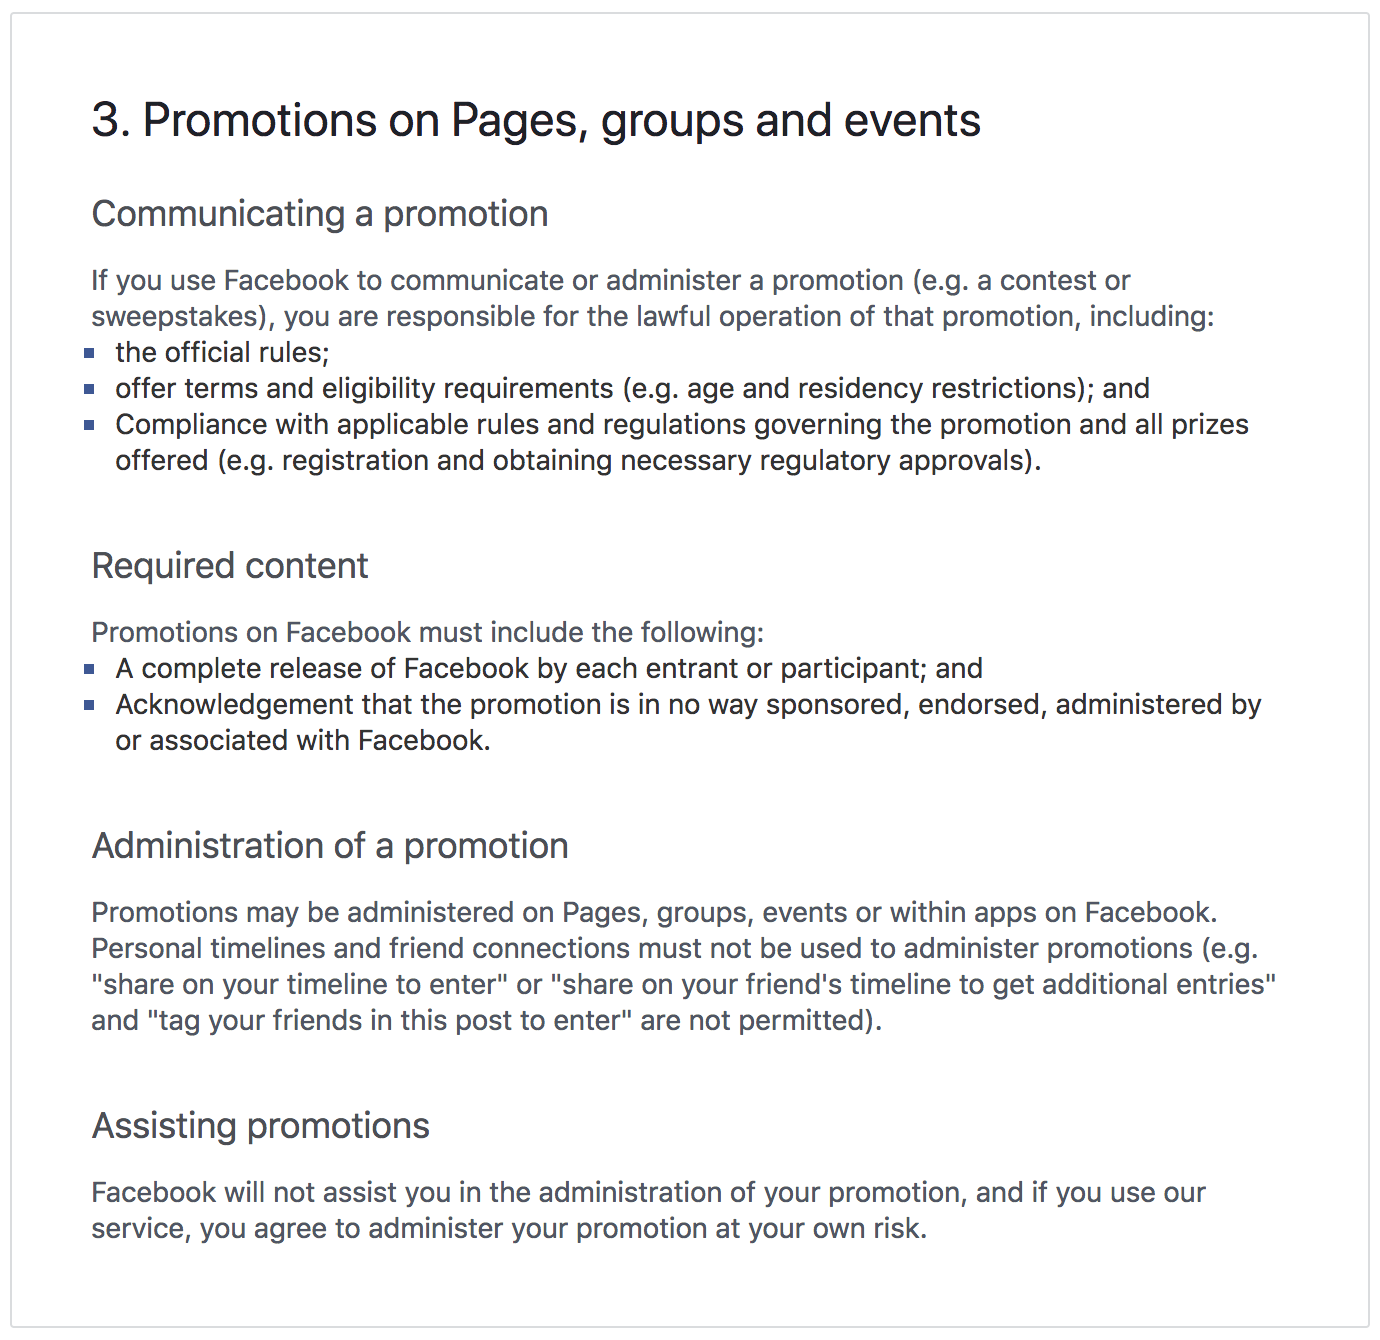 Screenshot of Facebook's official competition rules for running promotions on pages, groups and events updated September 2018